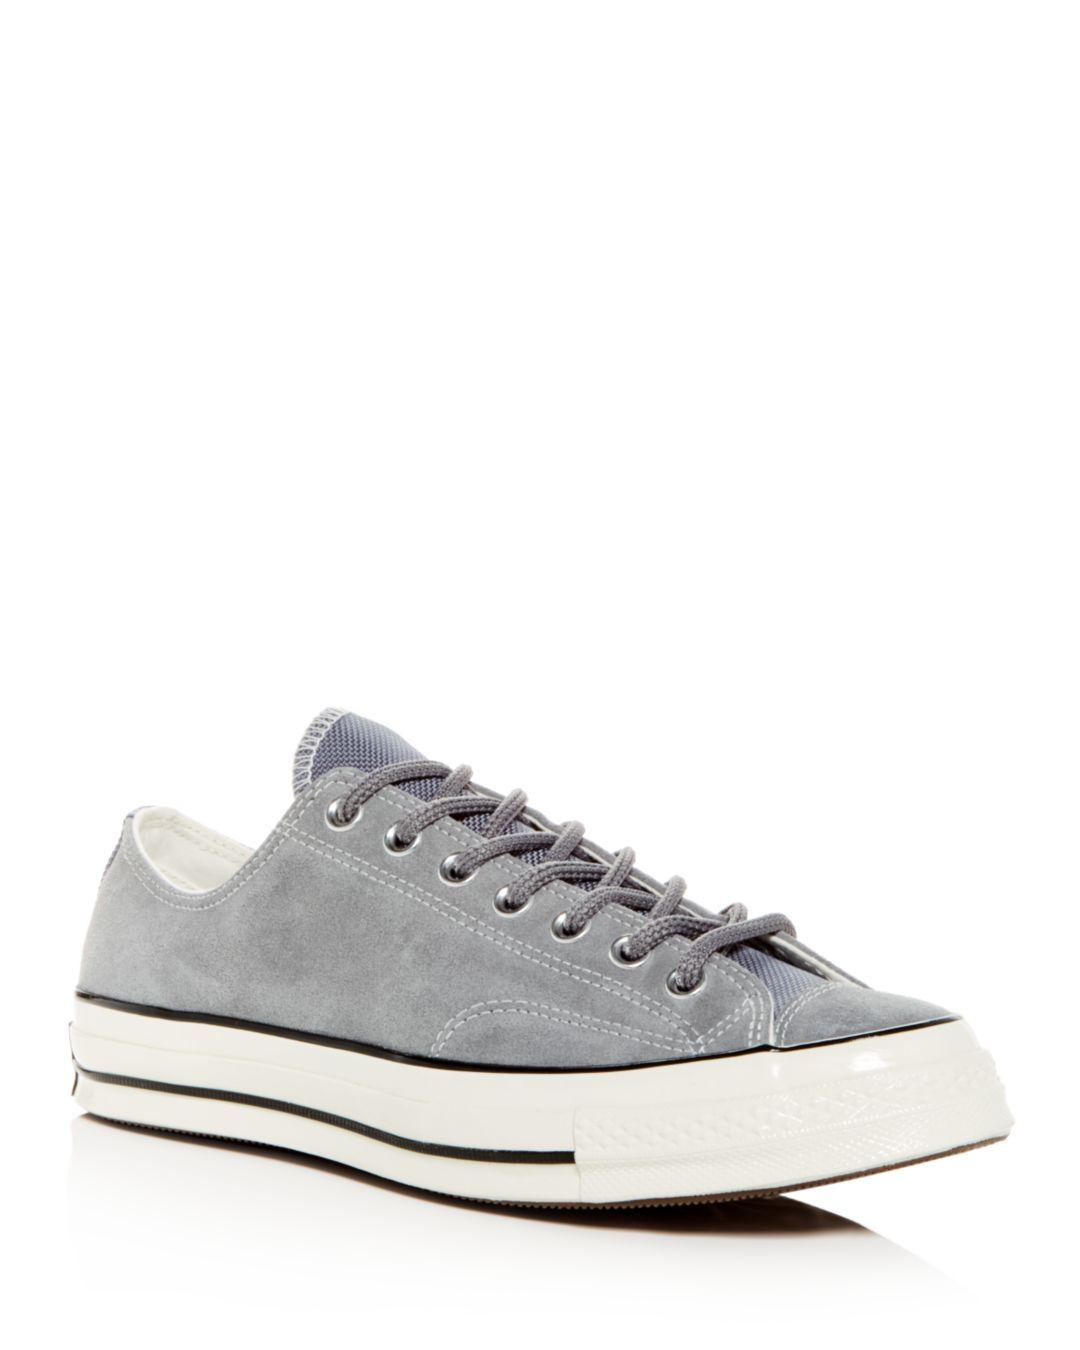 bcdc199cdb8a Converse Men s Chuck Taylor All Star 70 Suede Lace-up Sneakers in ...